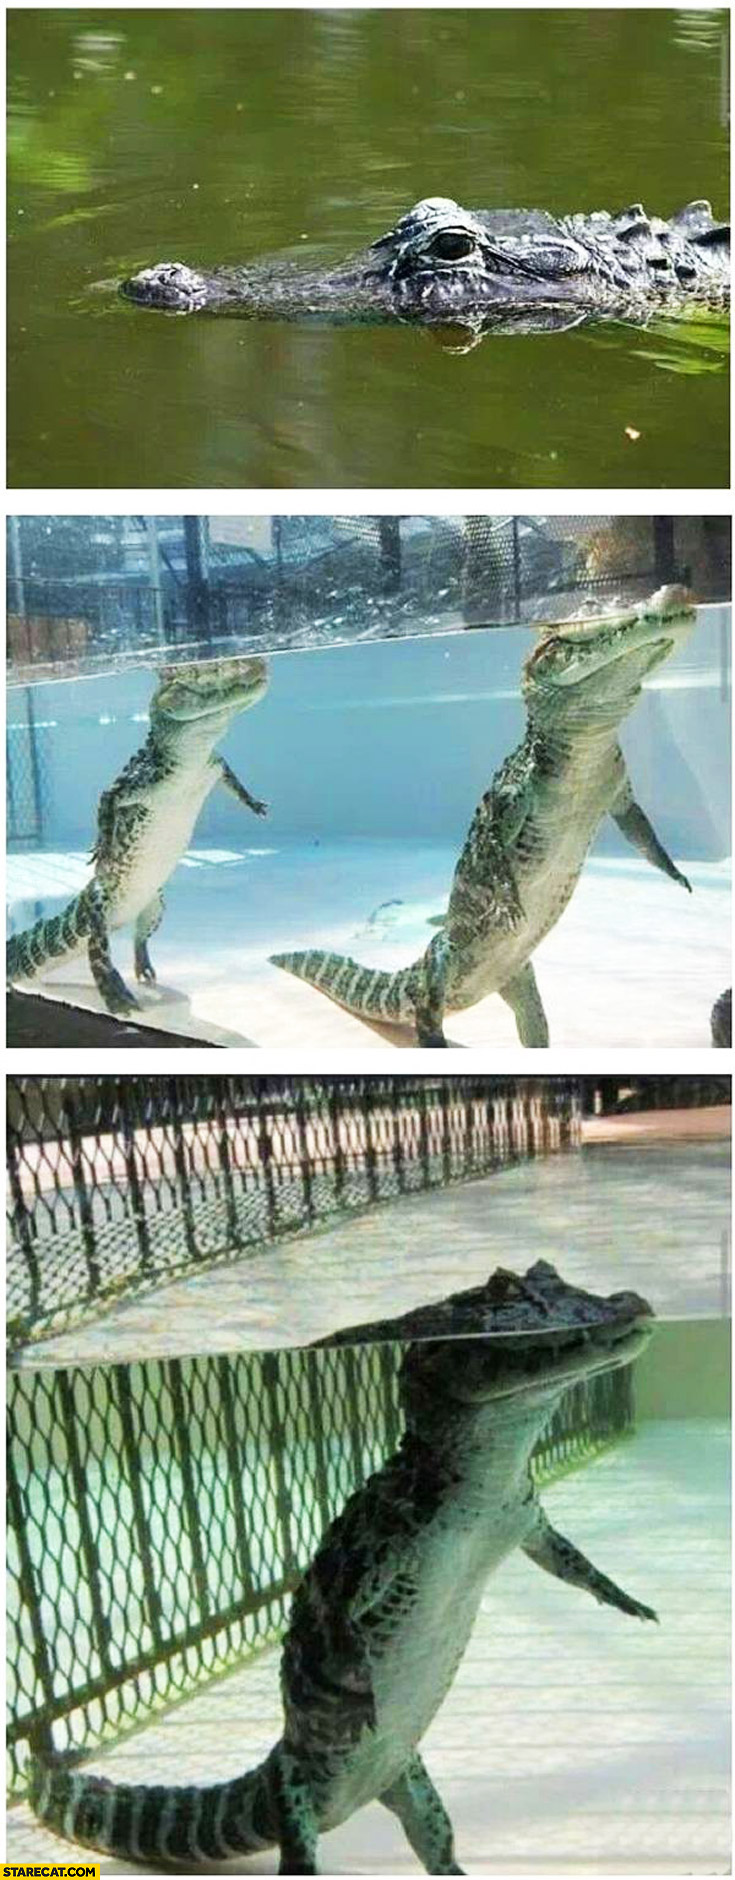 Alligators aren't really floating they are walking on the bottom